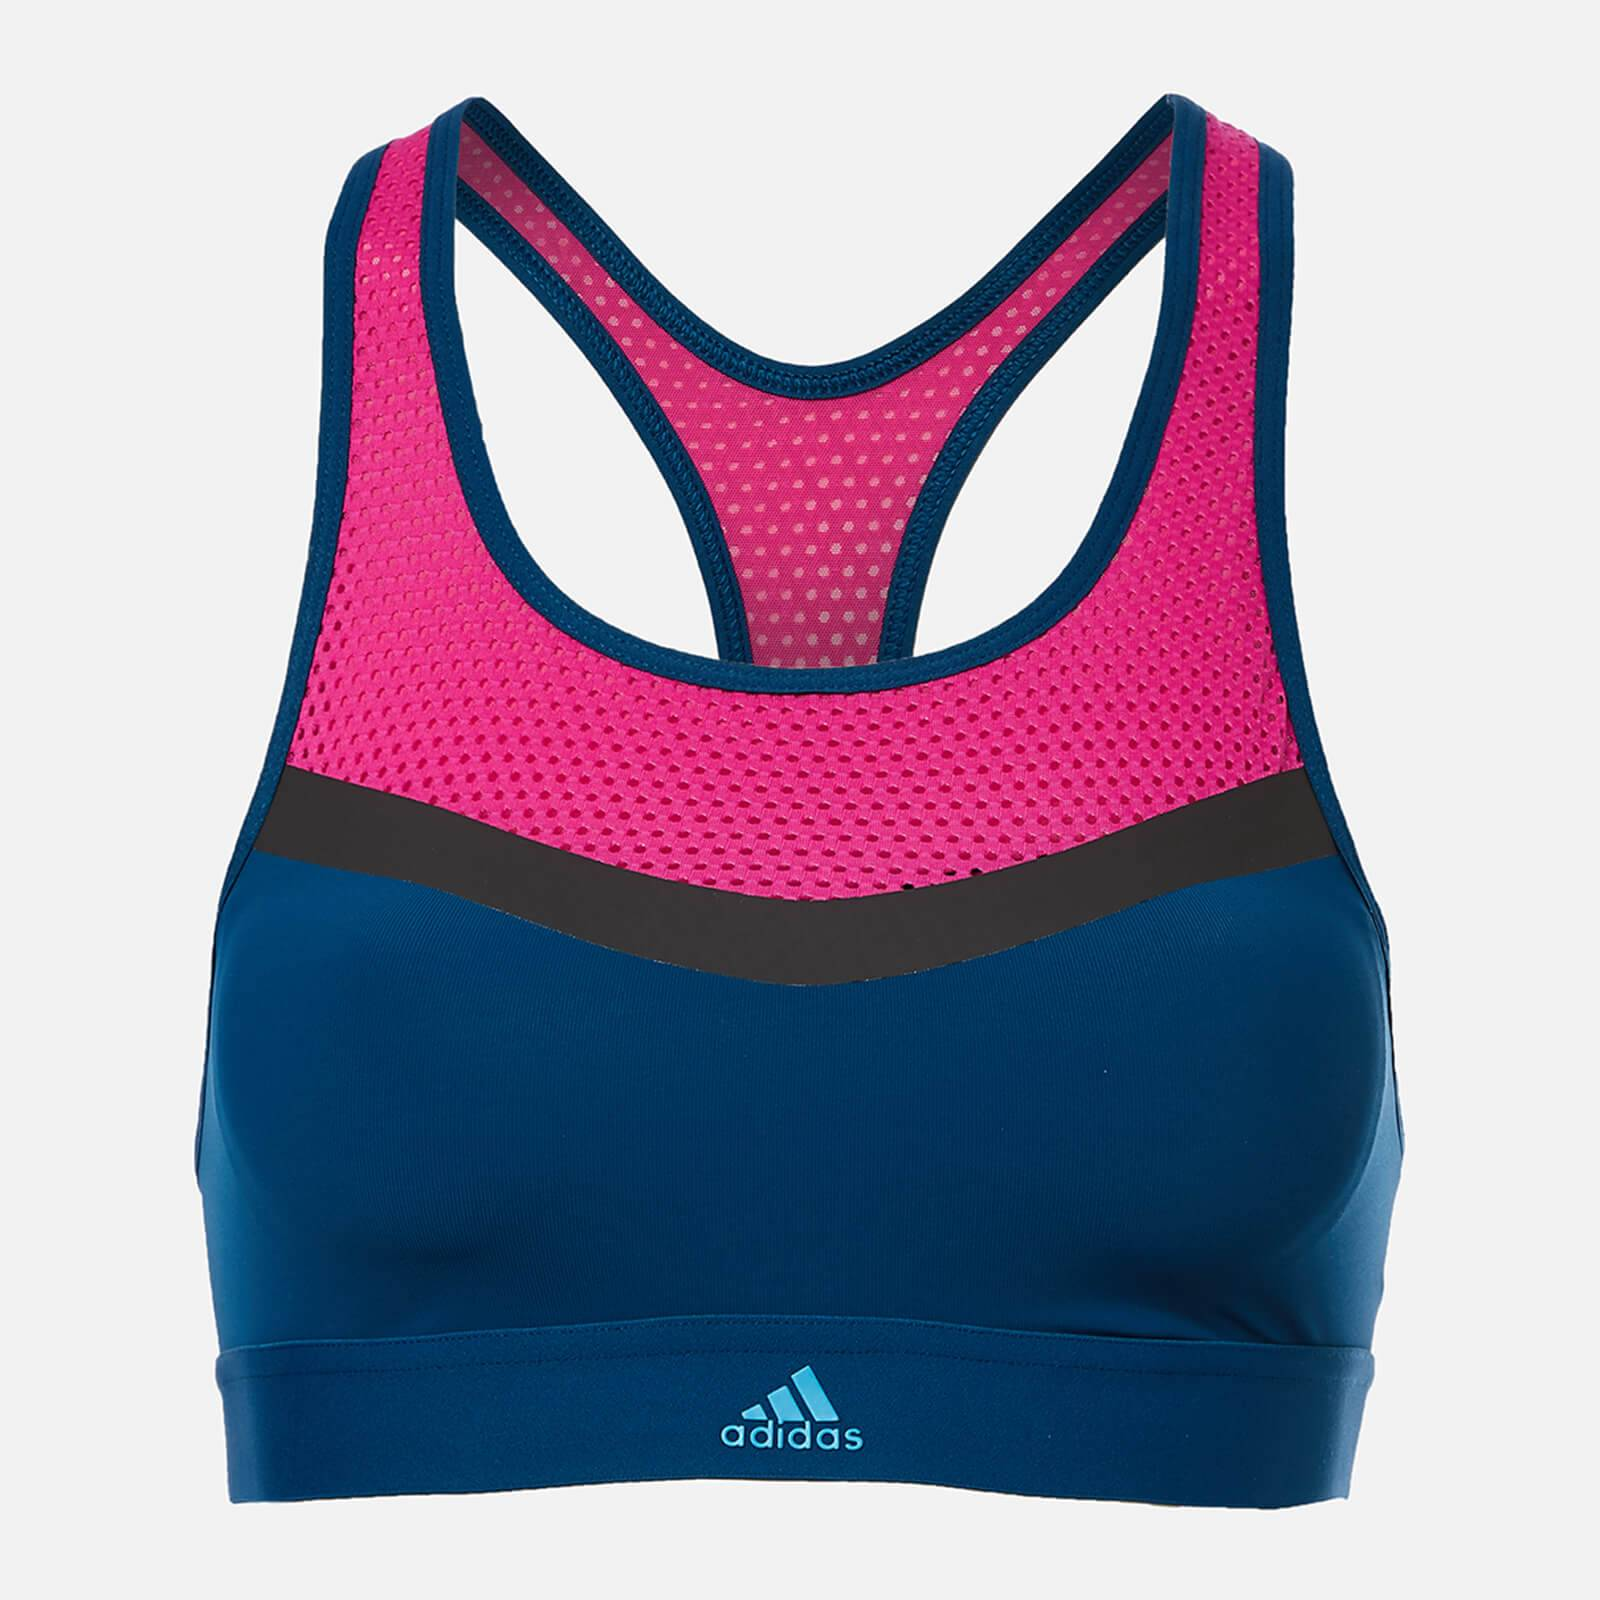 adidas Women's Don't Rest Swim Crop Top - Blue/Pink - 32D - Multi